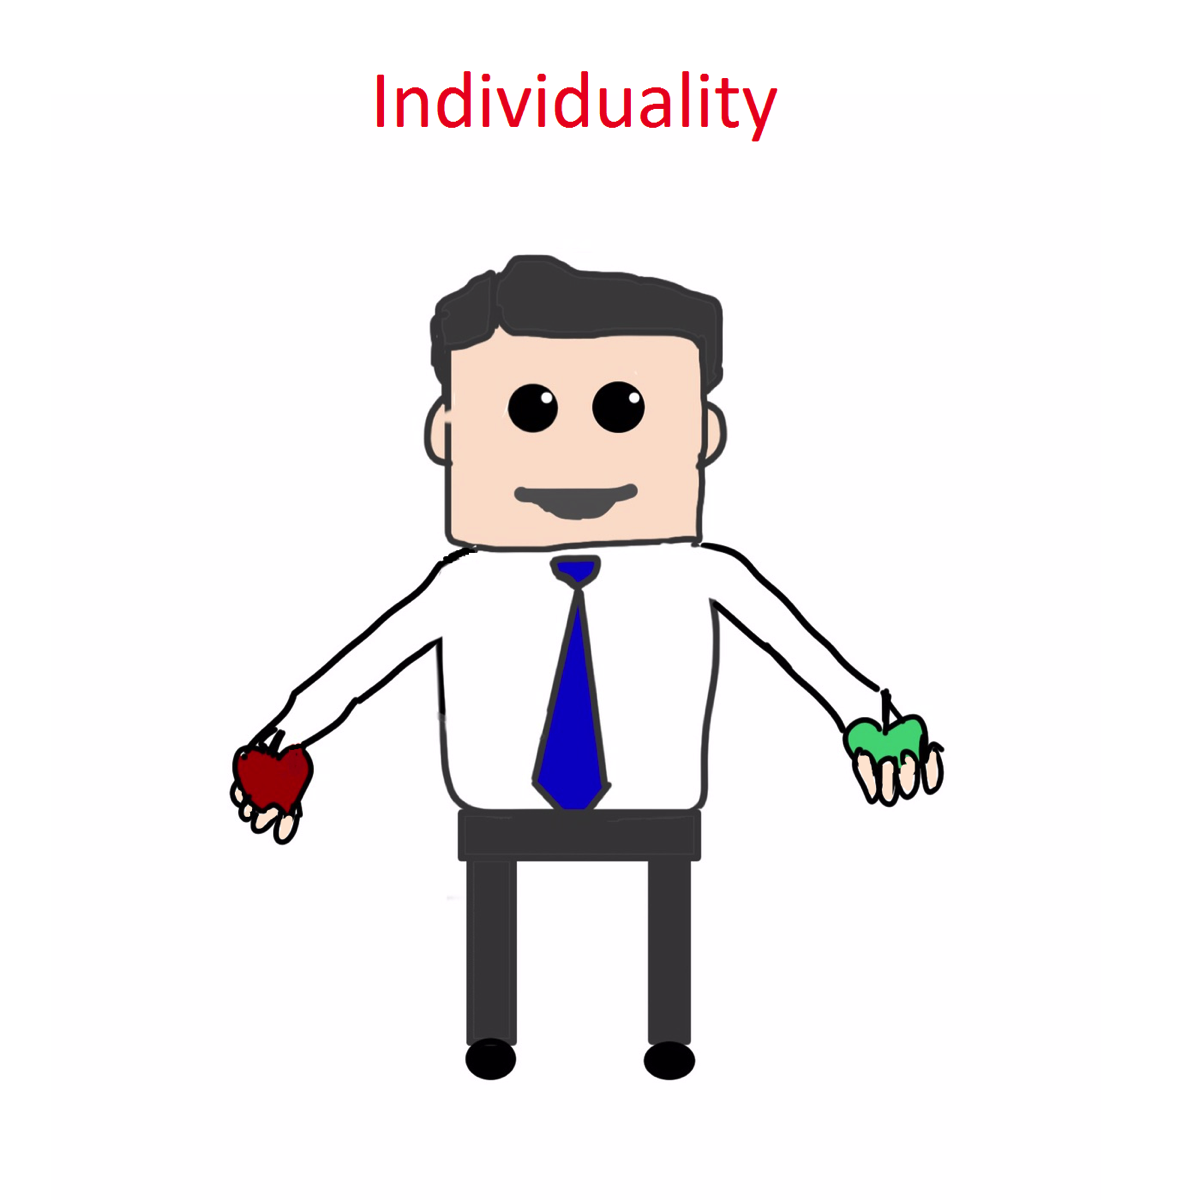 Individuality and personalisation